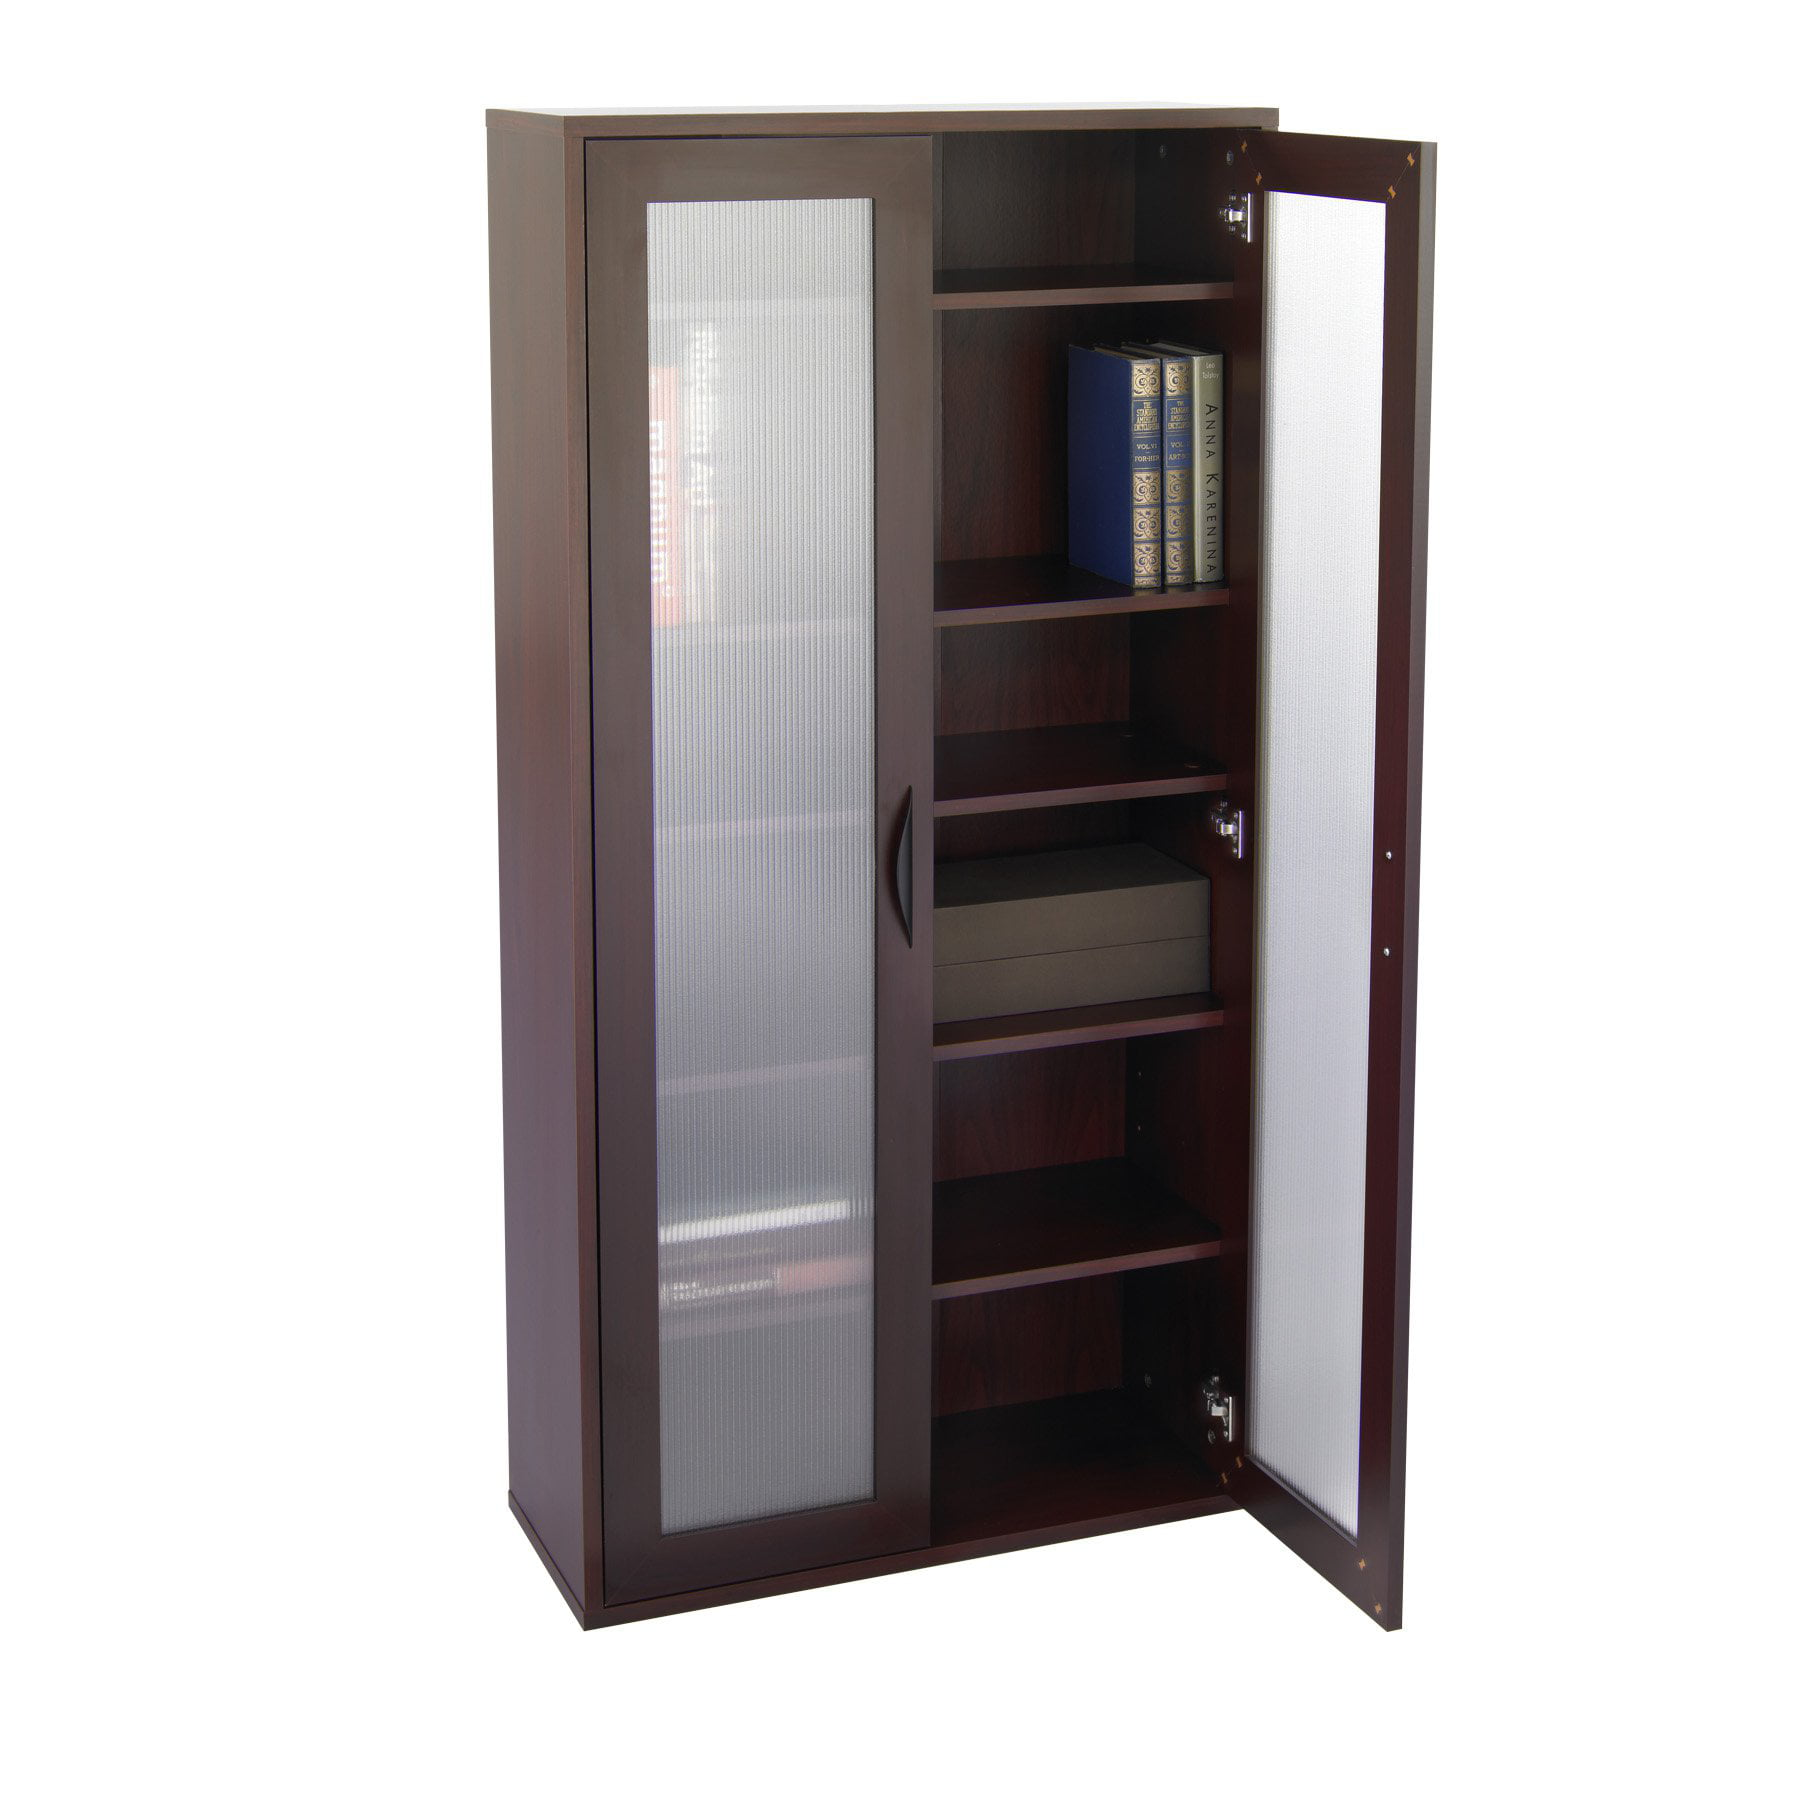 Beau Storage Bookcase With Glass Doors Tall   Mahogany   Walmart.com